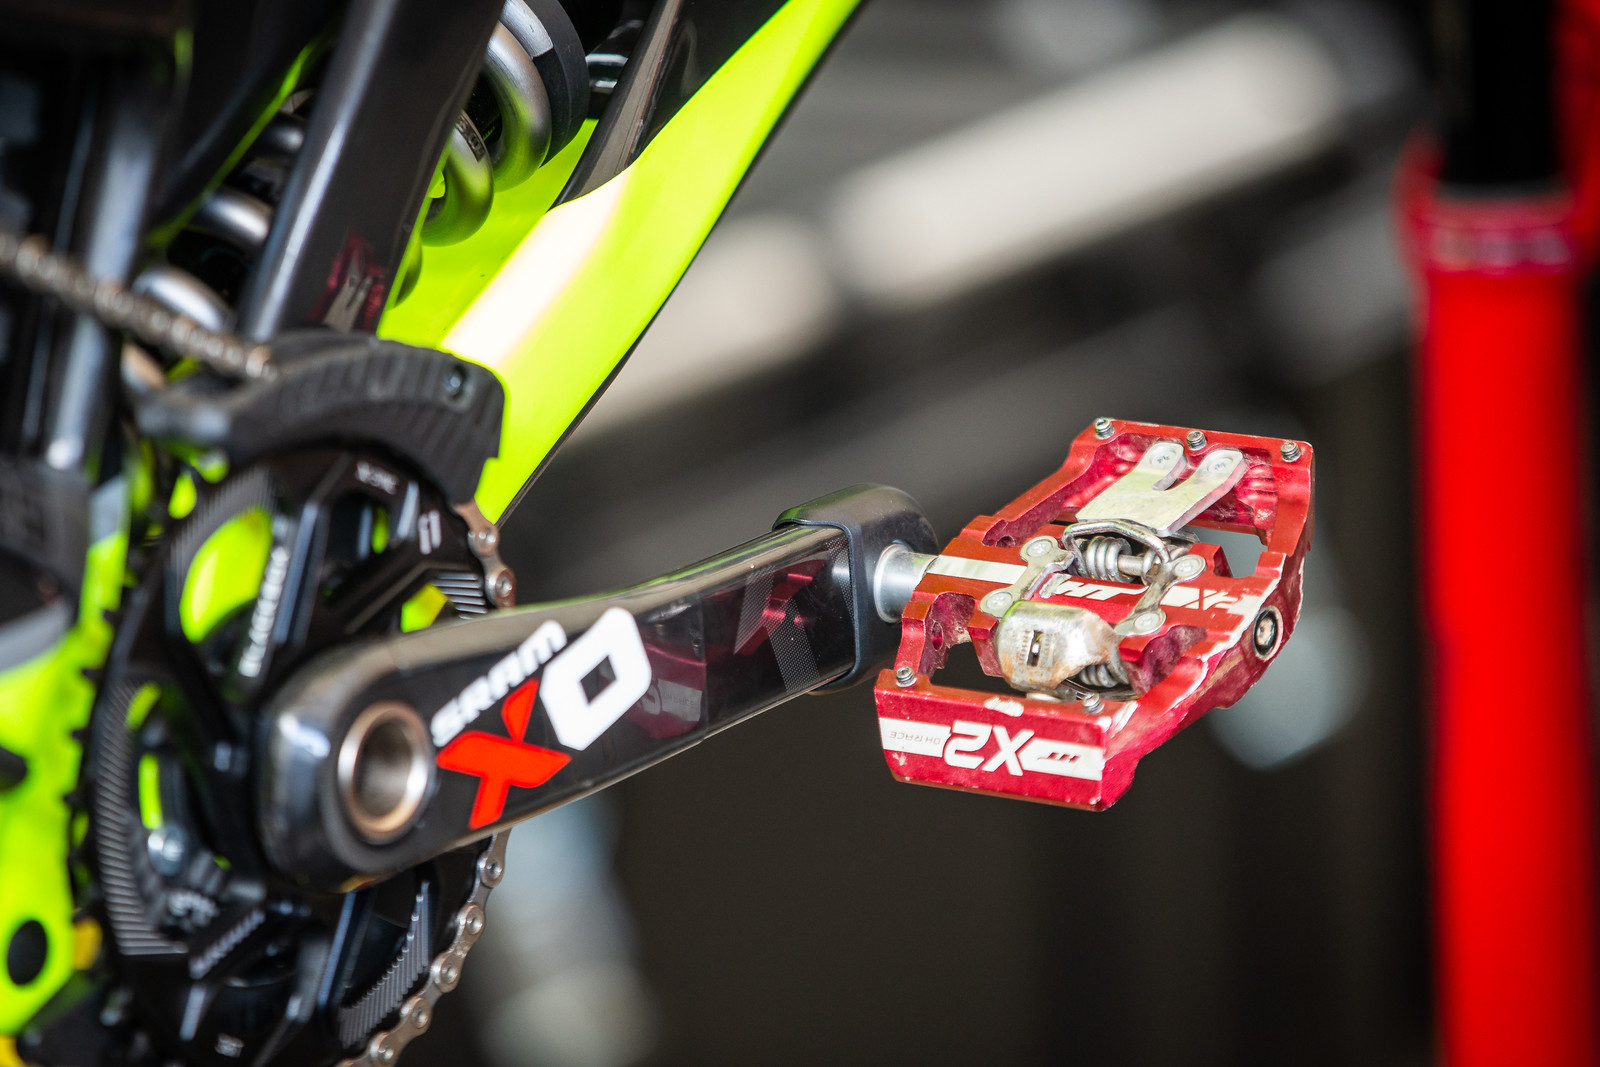 Modified HT X2 DH Pedals for Intense - PIT BITS - Val di Sole World Cup Downhill - Mountain Biking Pictures - Vital MTB